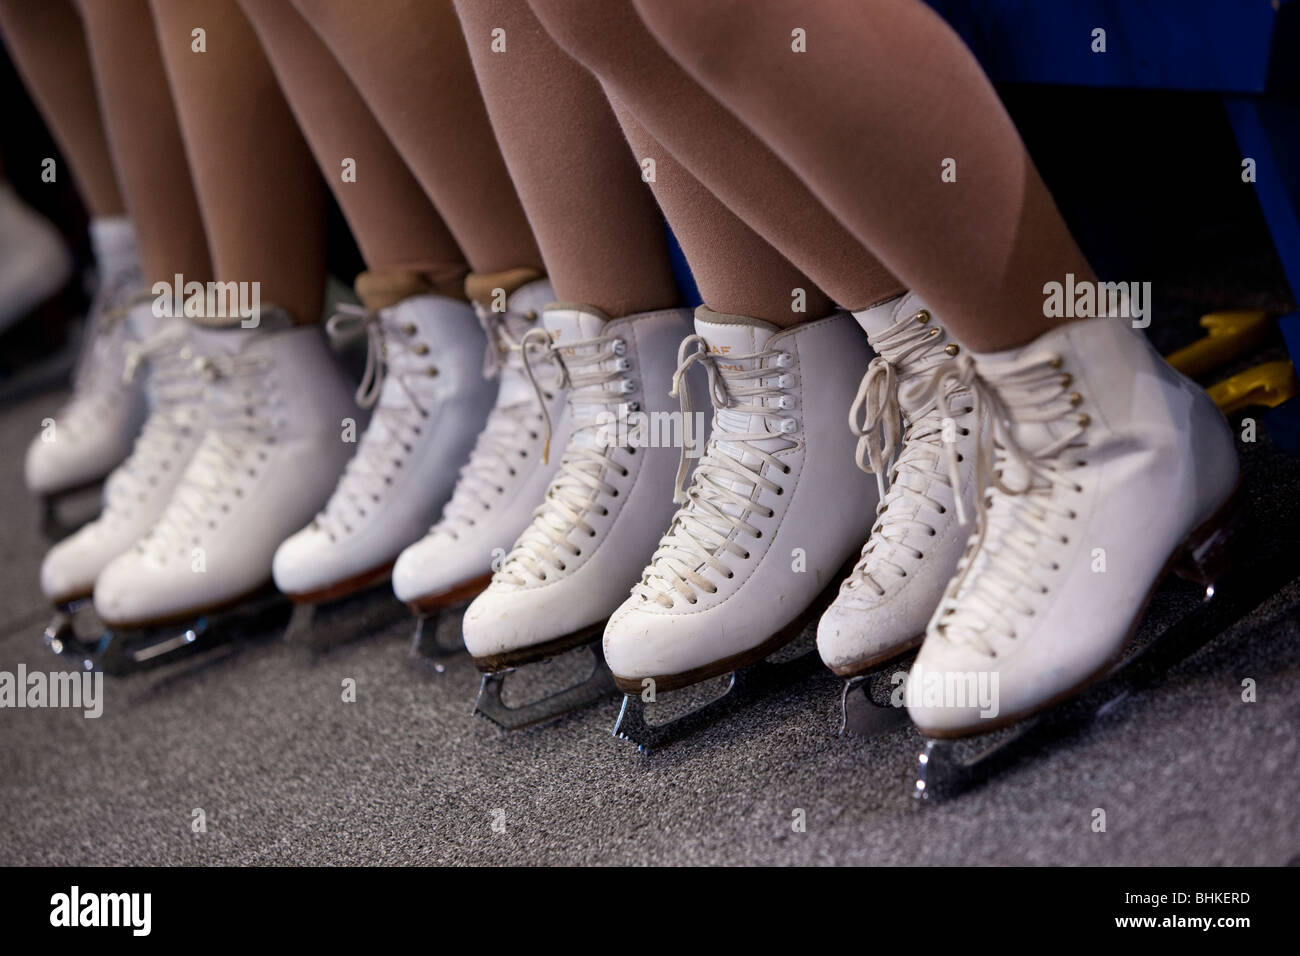 Detail of the skates of the flower girls during the the pairs free event at the 2010 Olympic Winter Games - Stock Image